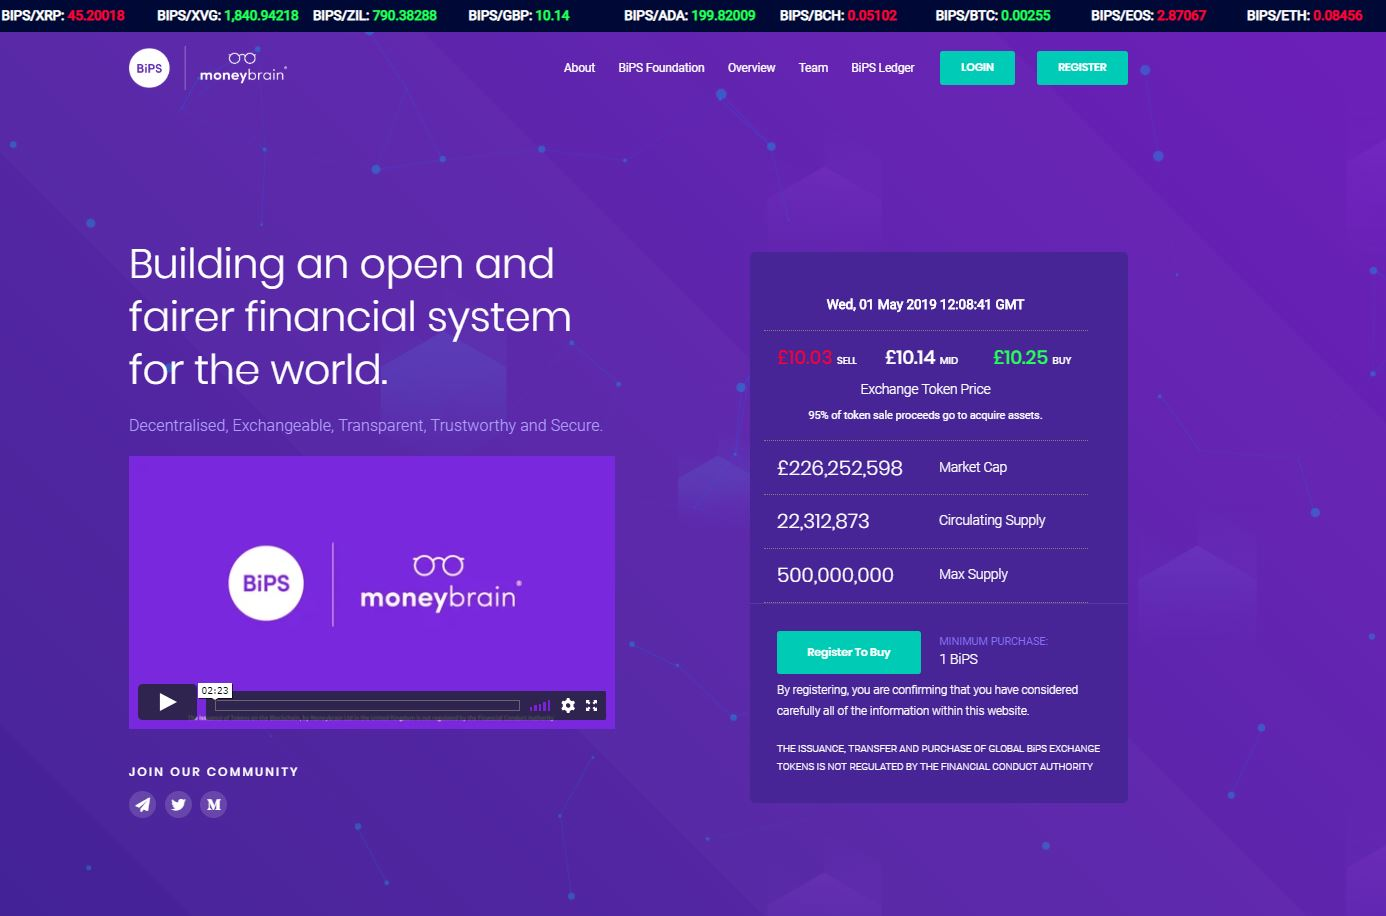 BiPS-Join us and help build an open and fairer financial system for the world.